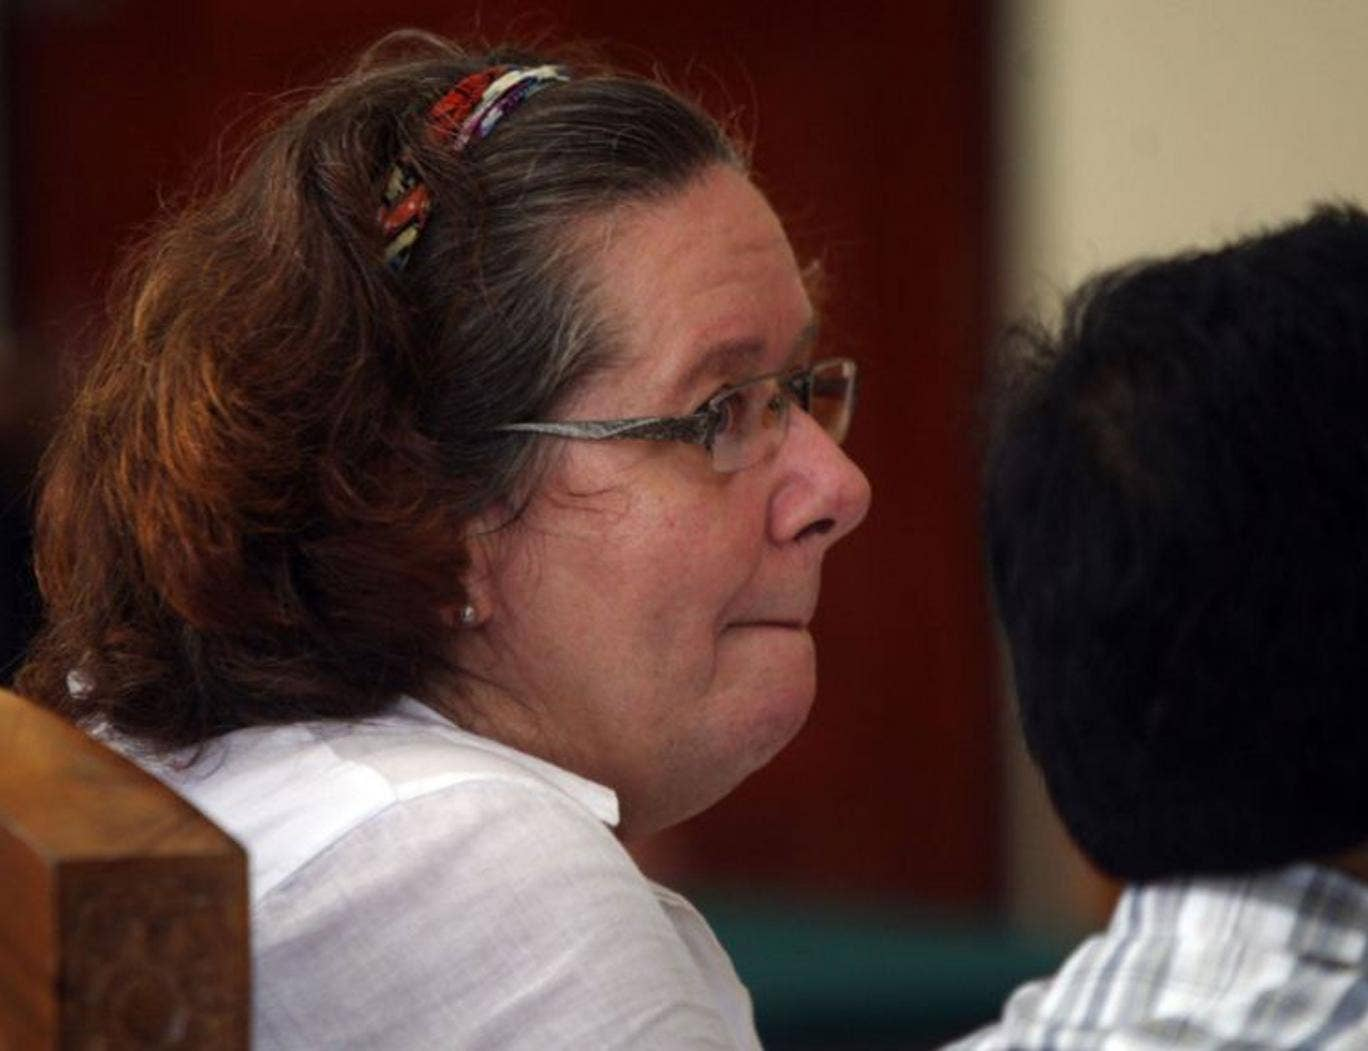 Lindsay Sandiford, 56, was sentenced to death at Denpasar District Court in January